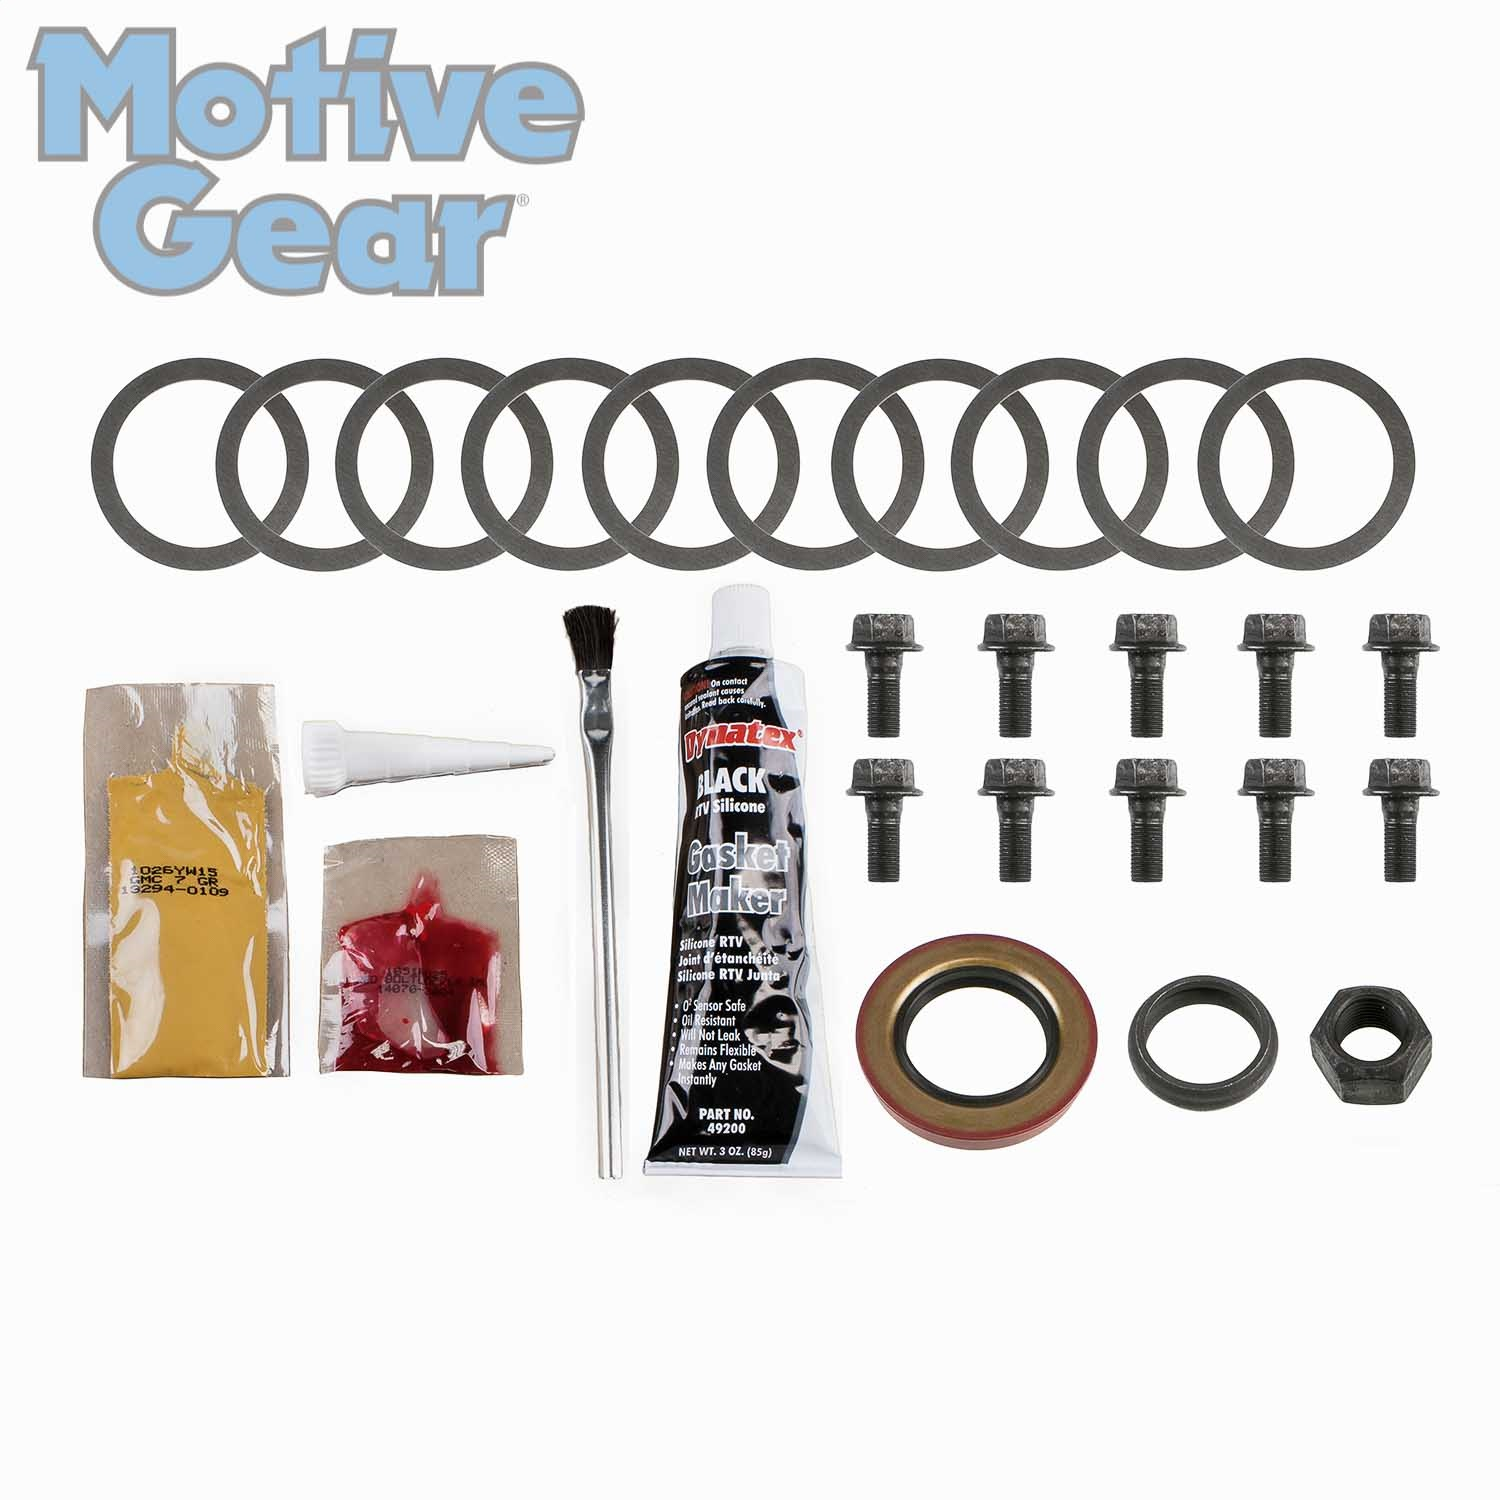 Motive Gear C8.25IK MOGC8.25IK MINI INSTALLATION KIT CHRYSLER 8.25